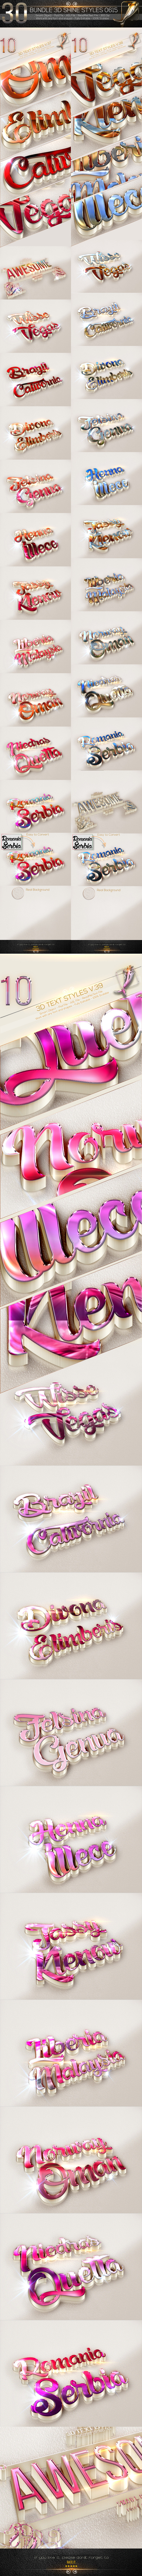 30 Bundle 3D Text Effect 0615 - Text Effects Styles